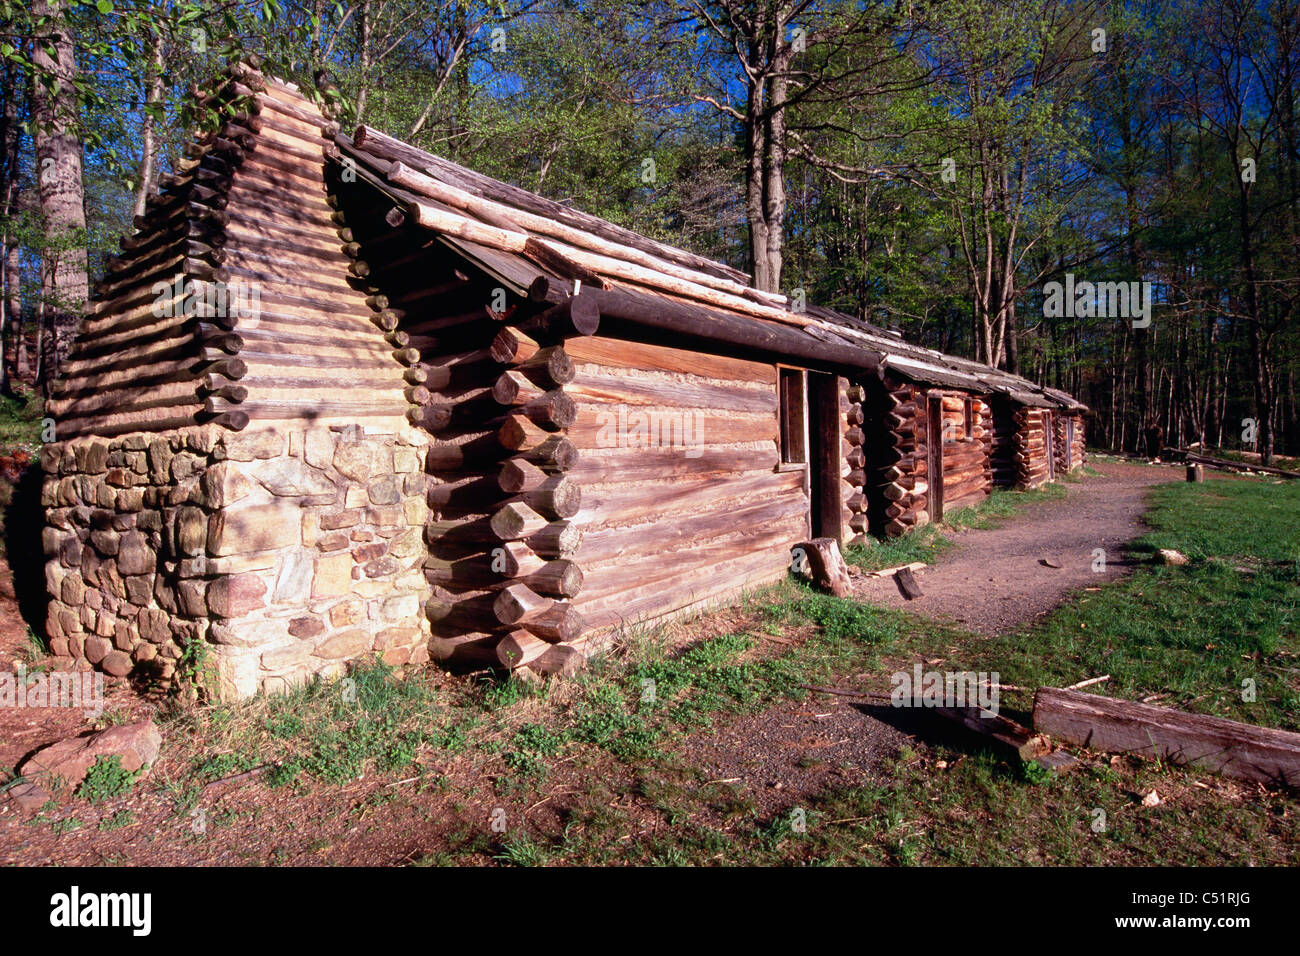 Reproduction Soldier Huts of the Continental Army, Jockey Hollow, Morristown National Historical Park, New Jersey - Stock Image